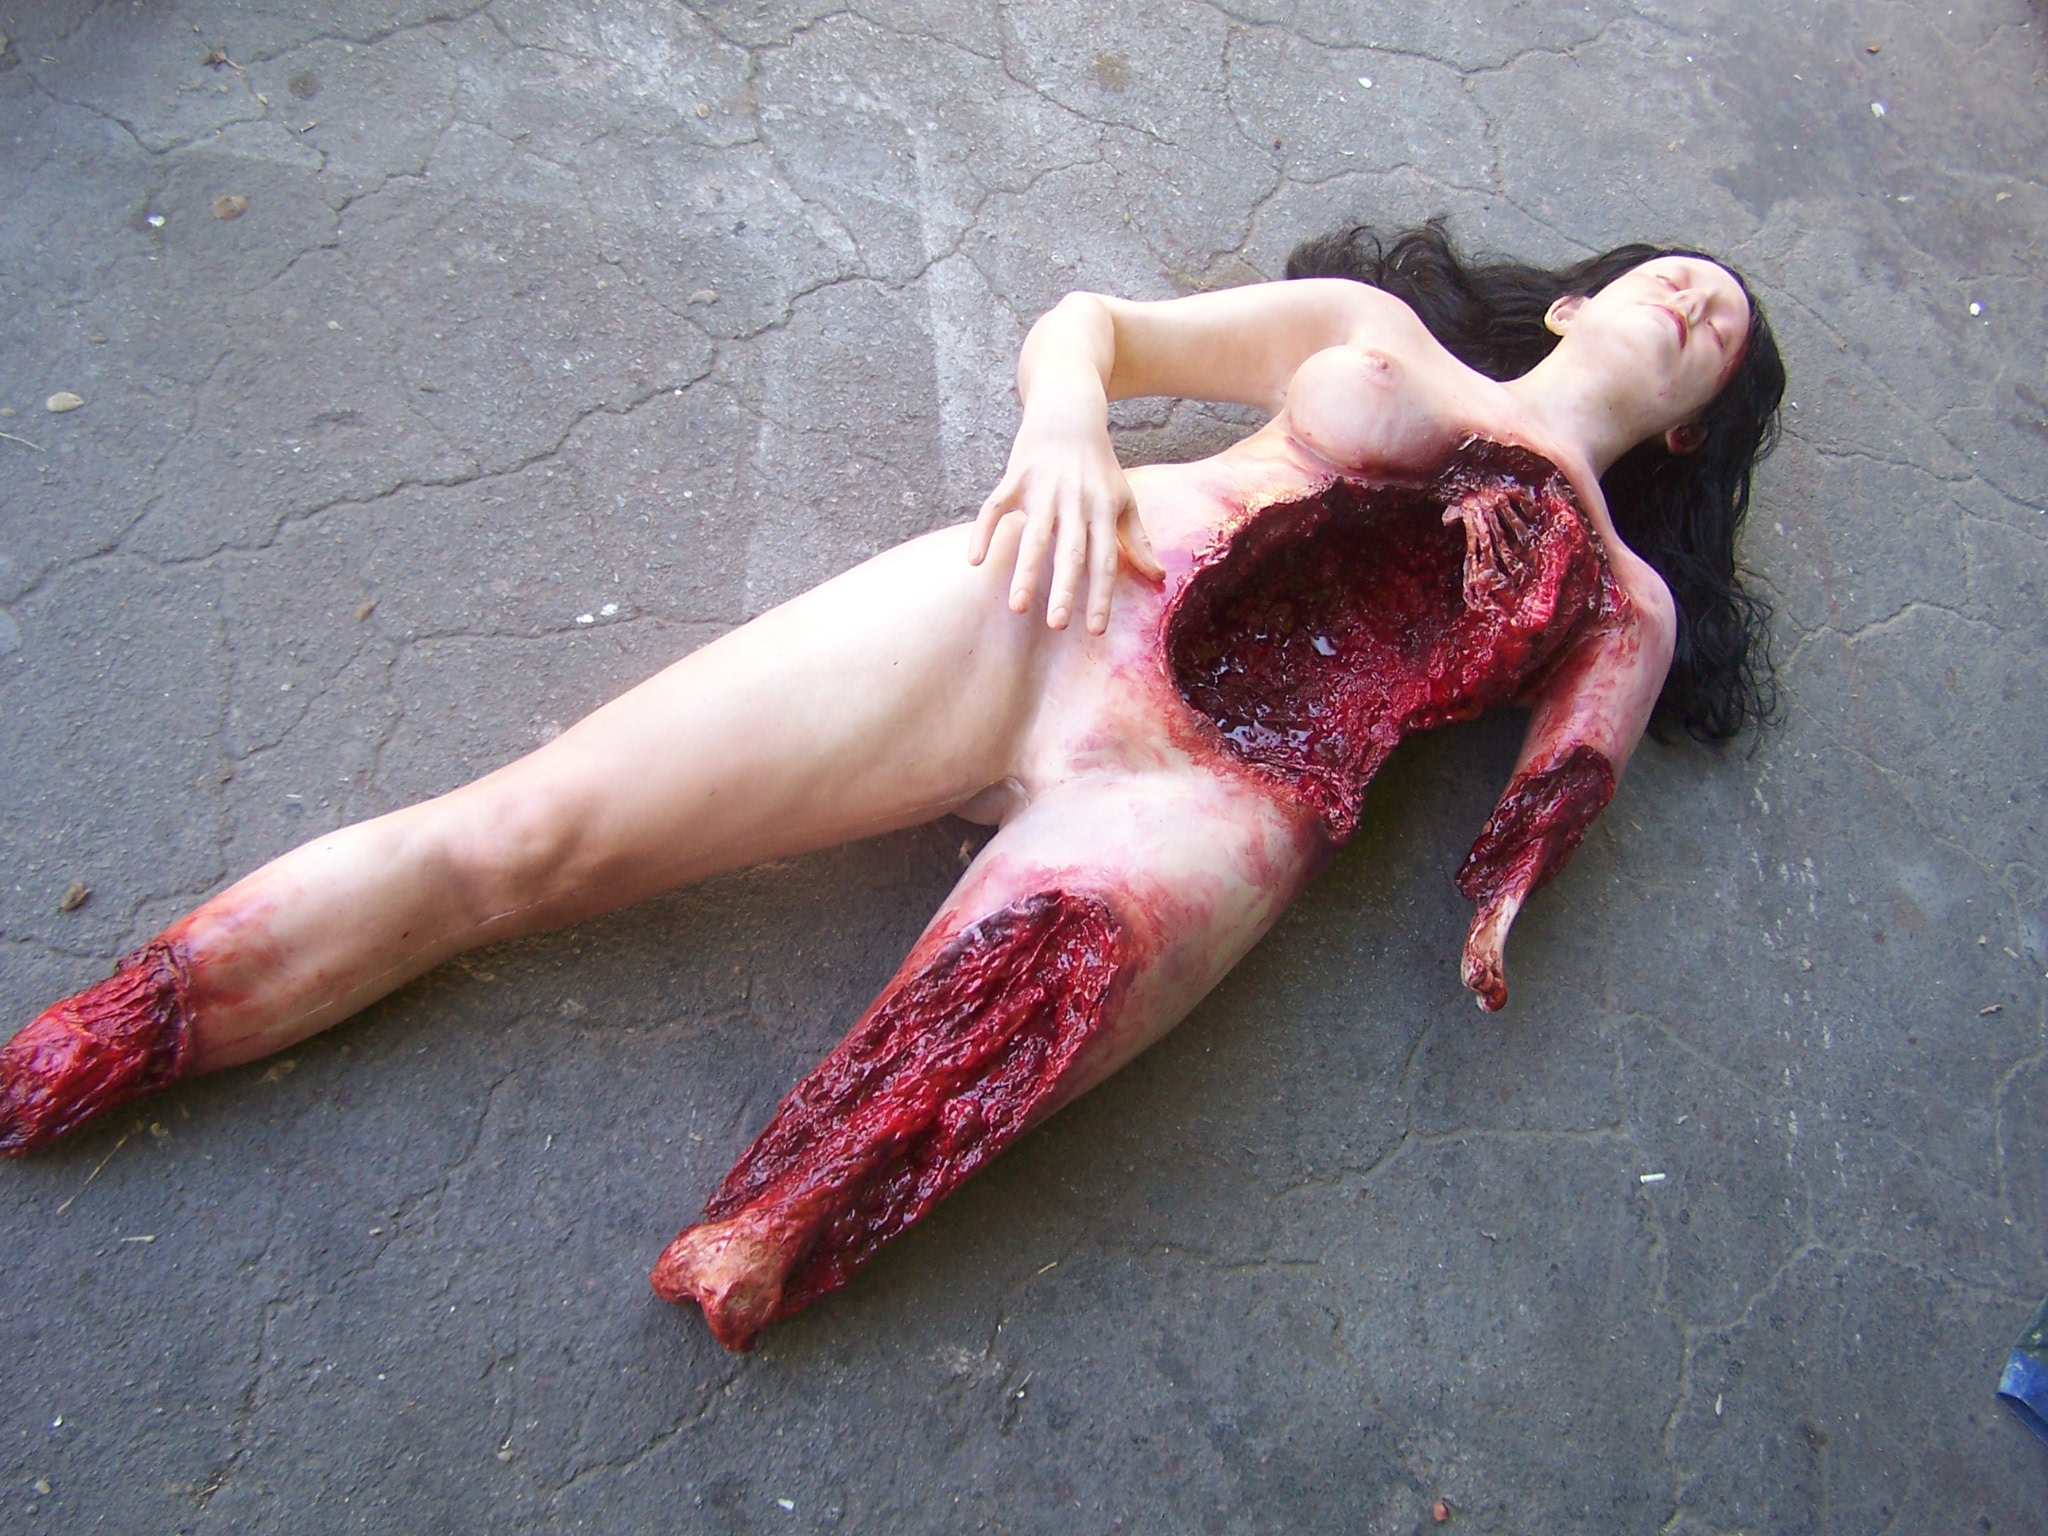 Gory Bloody Wallpaper Deluxe Wounded Jessica 20